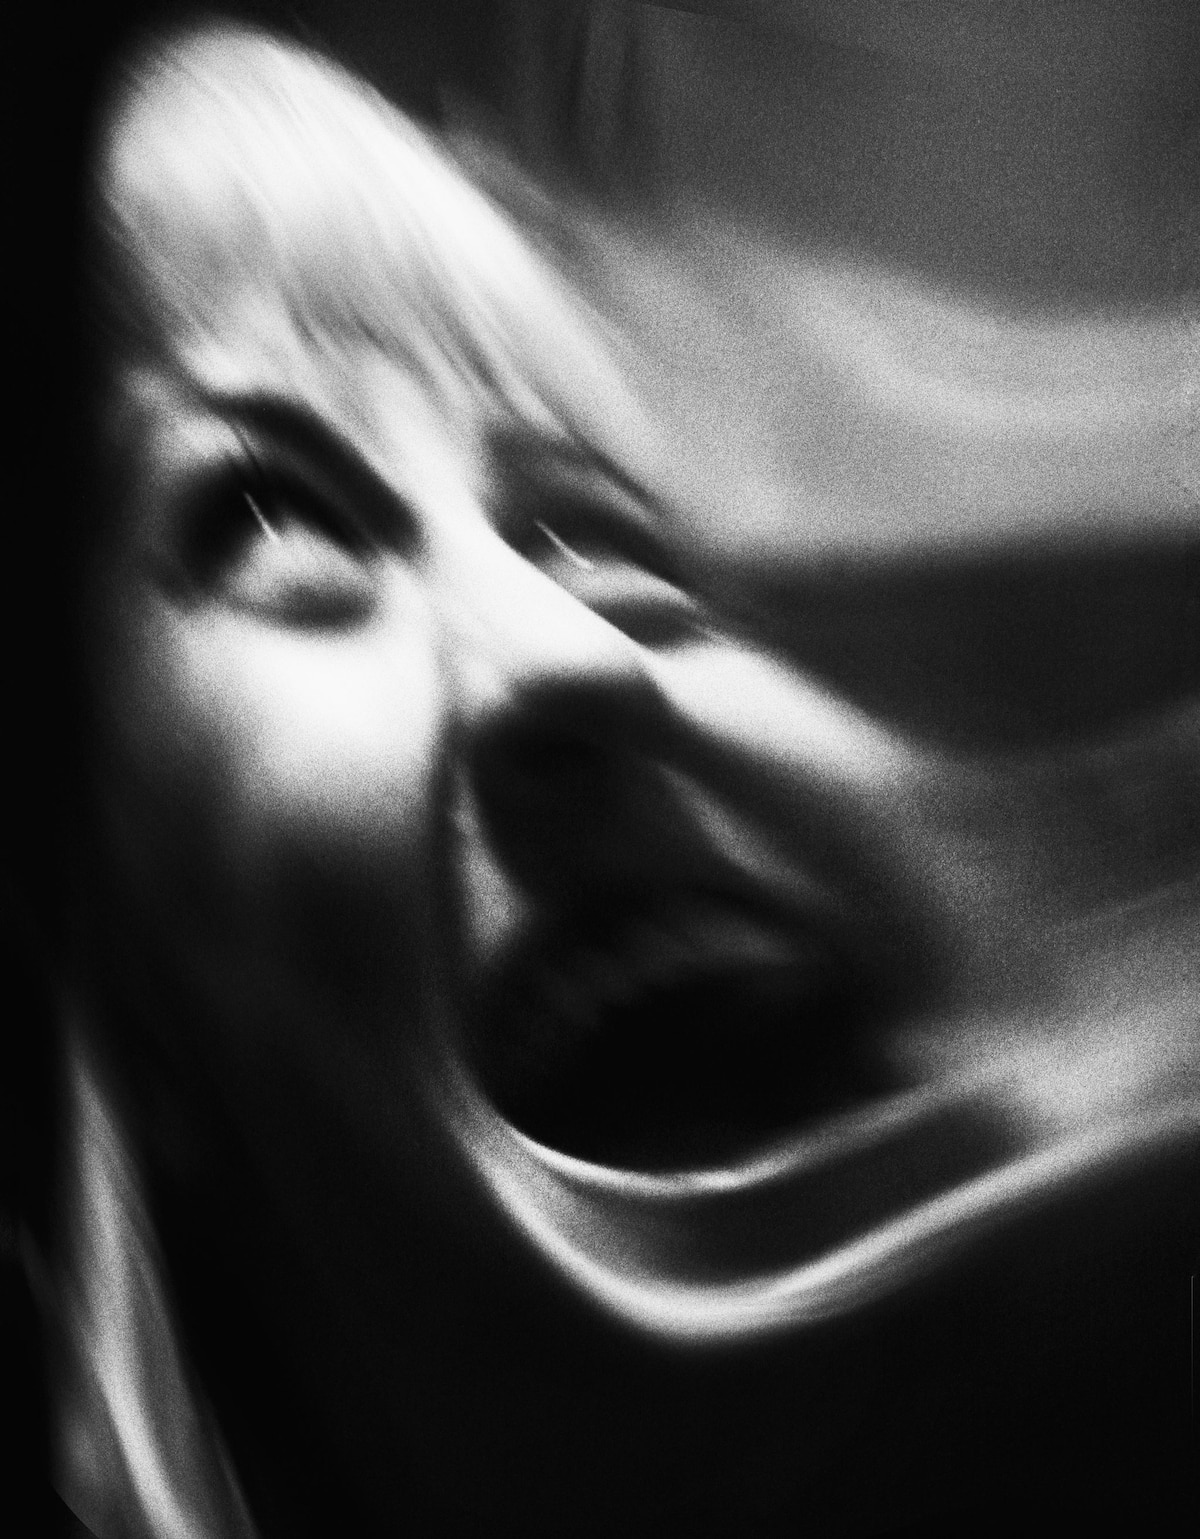 Human screams can convey at least six emotions